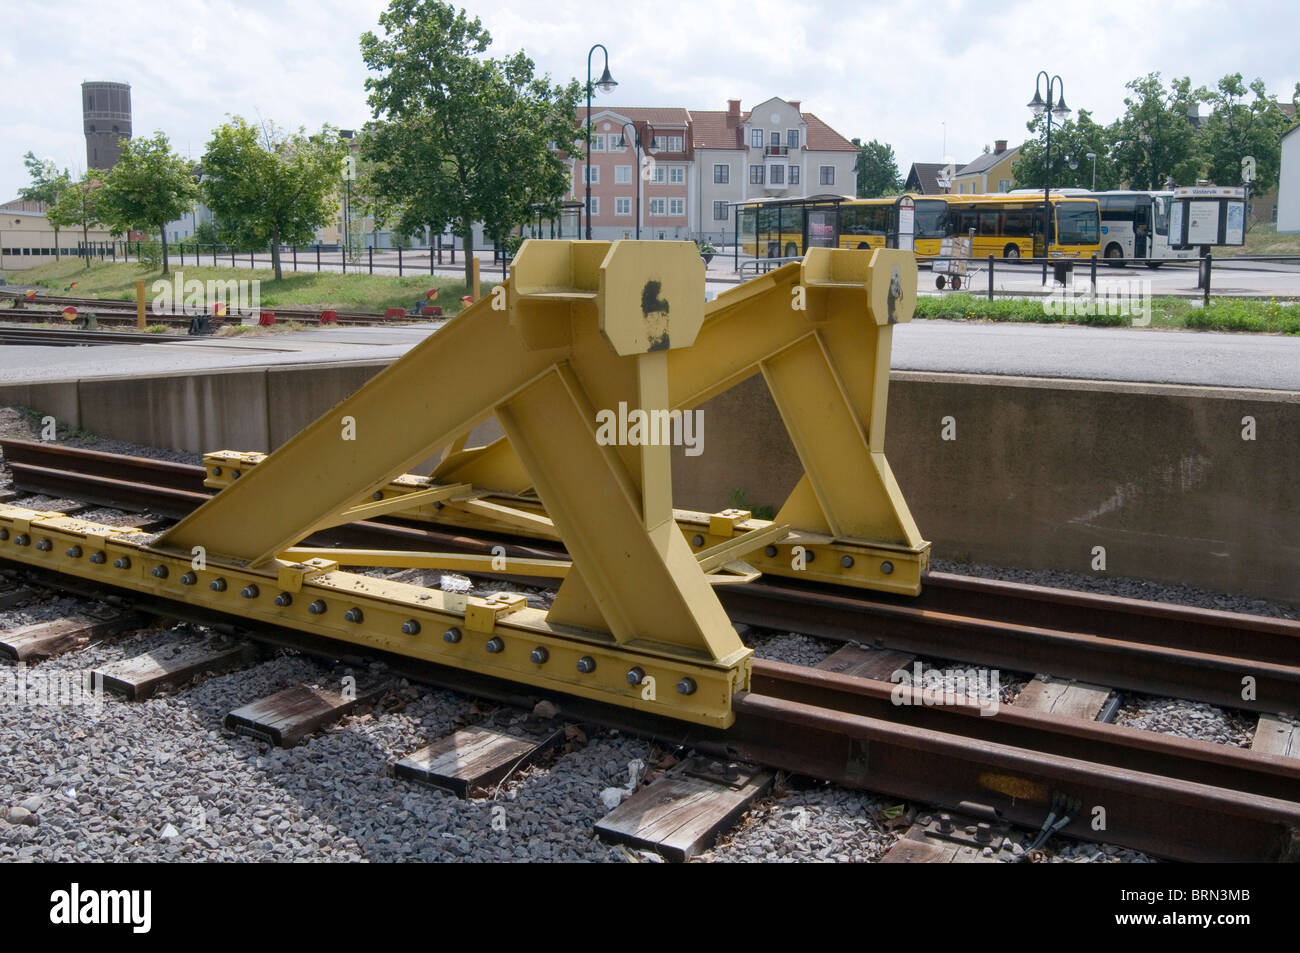 buffers buffers hit hitting the rail rails railway railways end of the line destination final stop stopping point - Stock Image